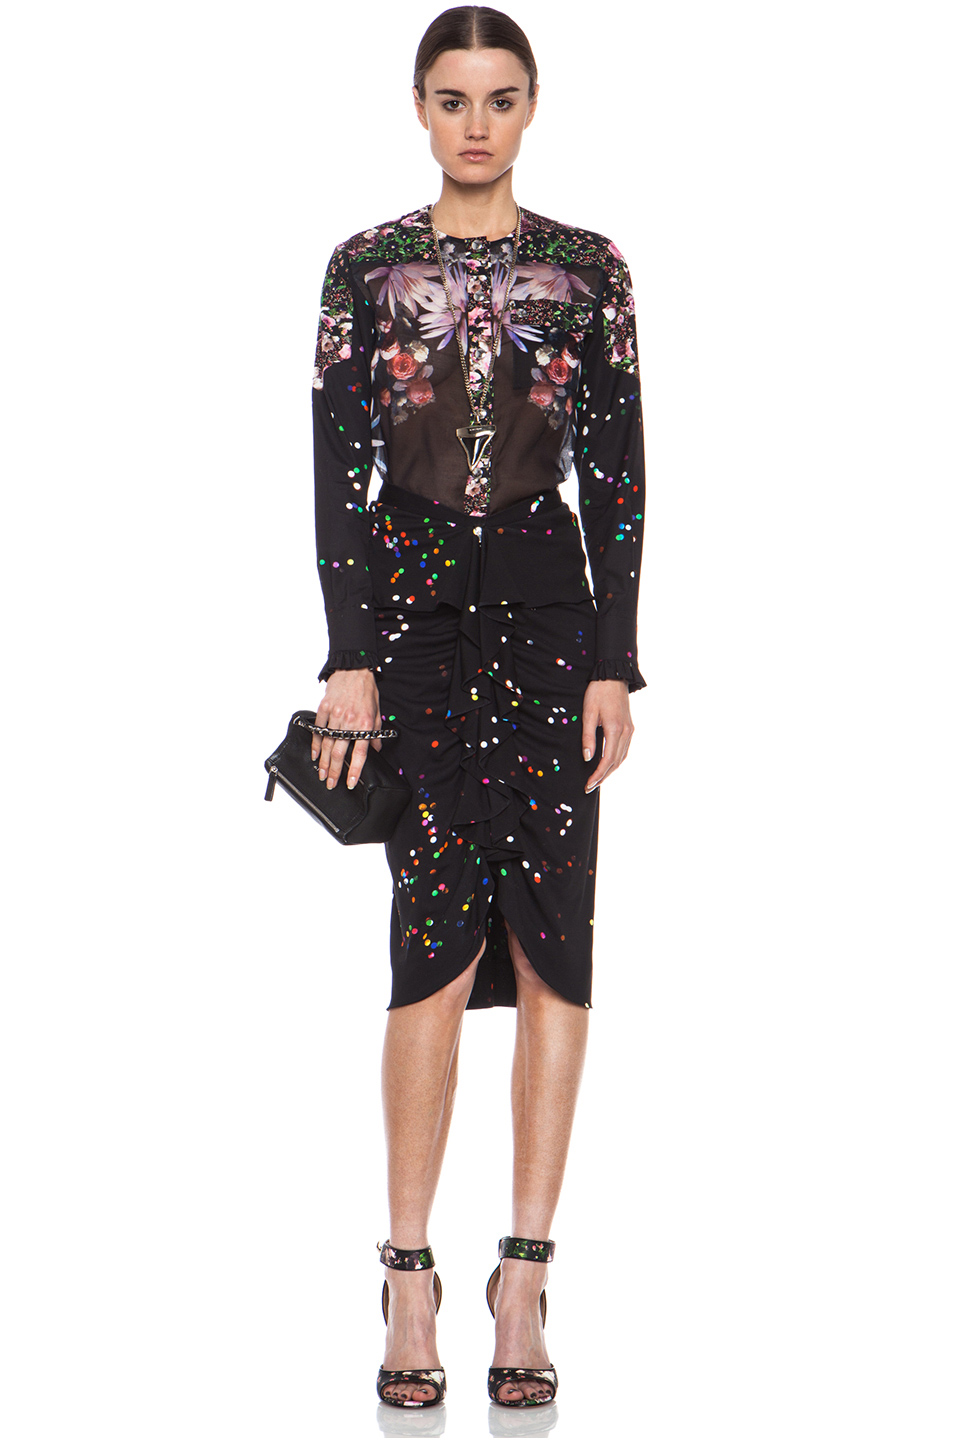 GIVENCHY|Crepe Jersey Confetti Ruffle Skirt in Multi